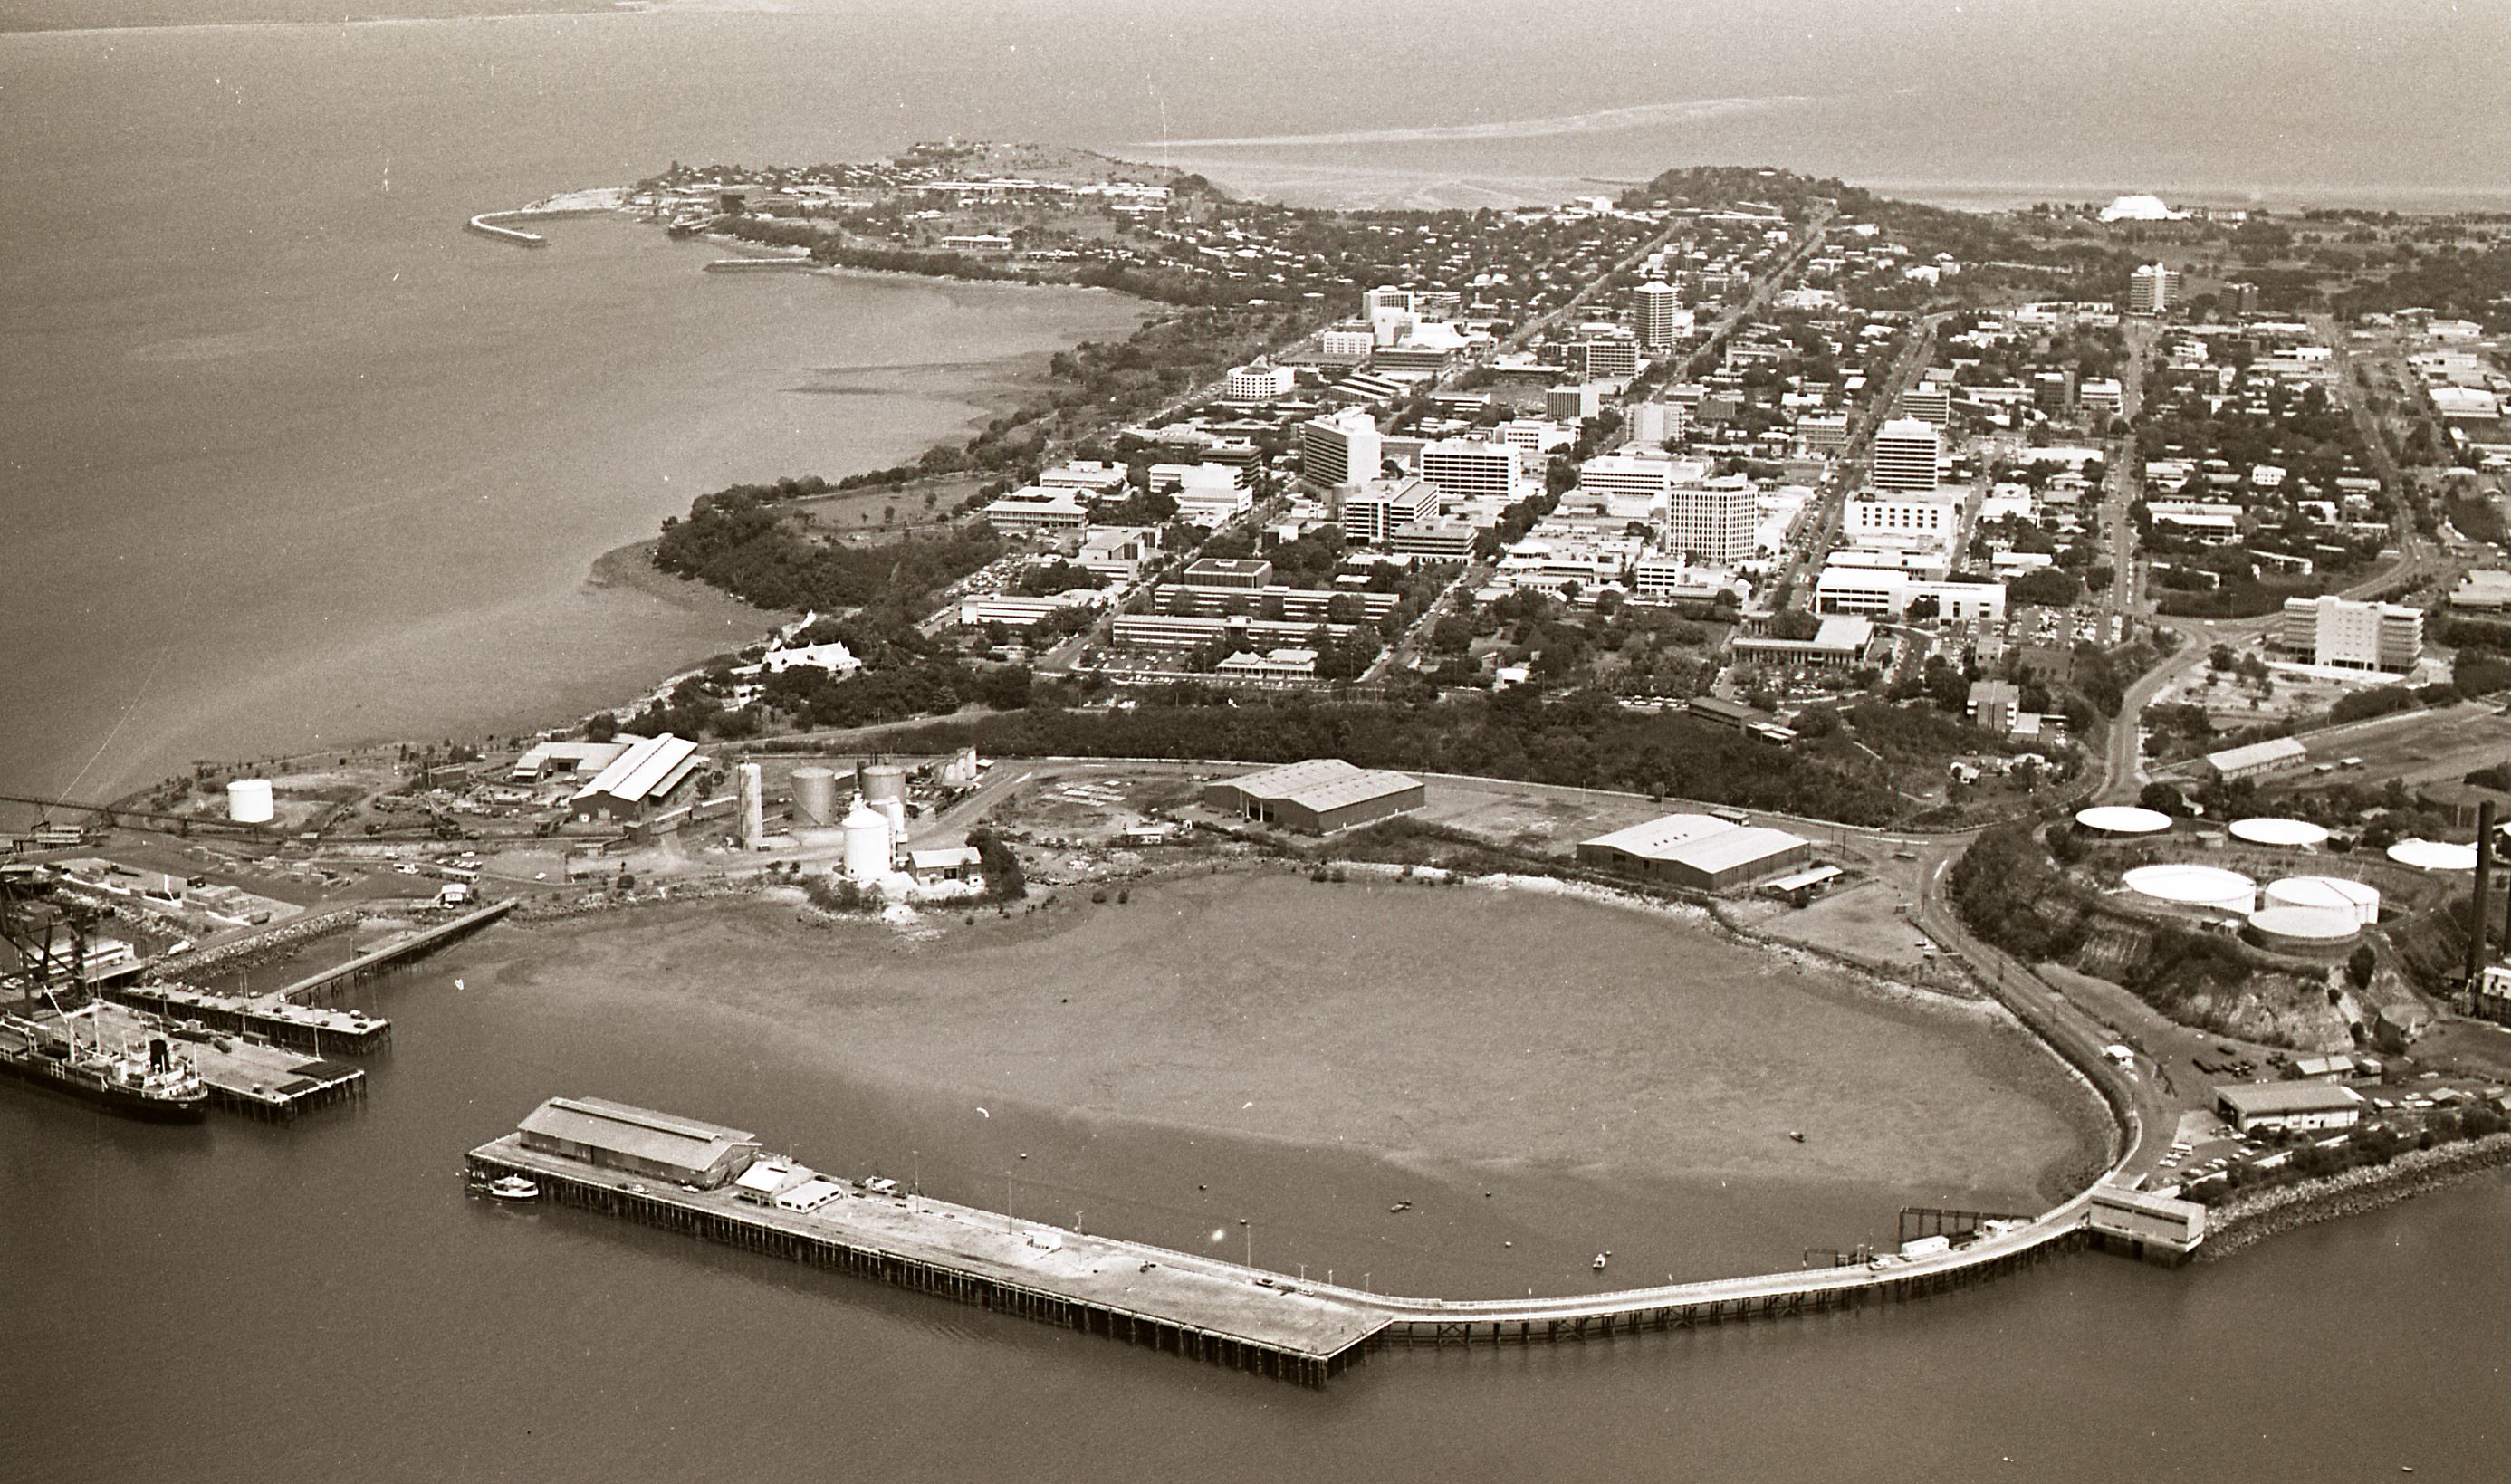 [Darwin Aerial Views, View over harbour, Stokes Hills Wharf in foreground, 21 October 1987] <br />Image courtesy of Northern Territory Archives Service, Department of the Chief Minister, NTRS 3823, item BW2681, 24.